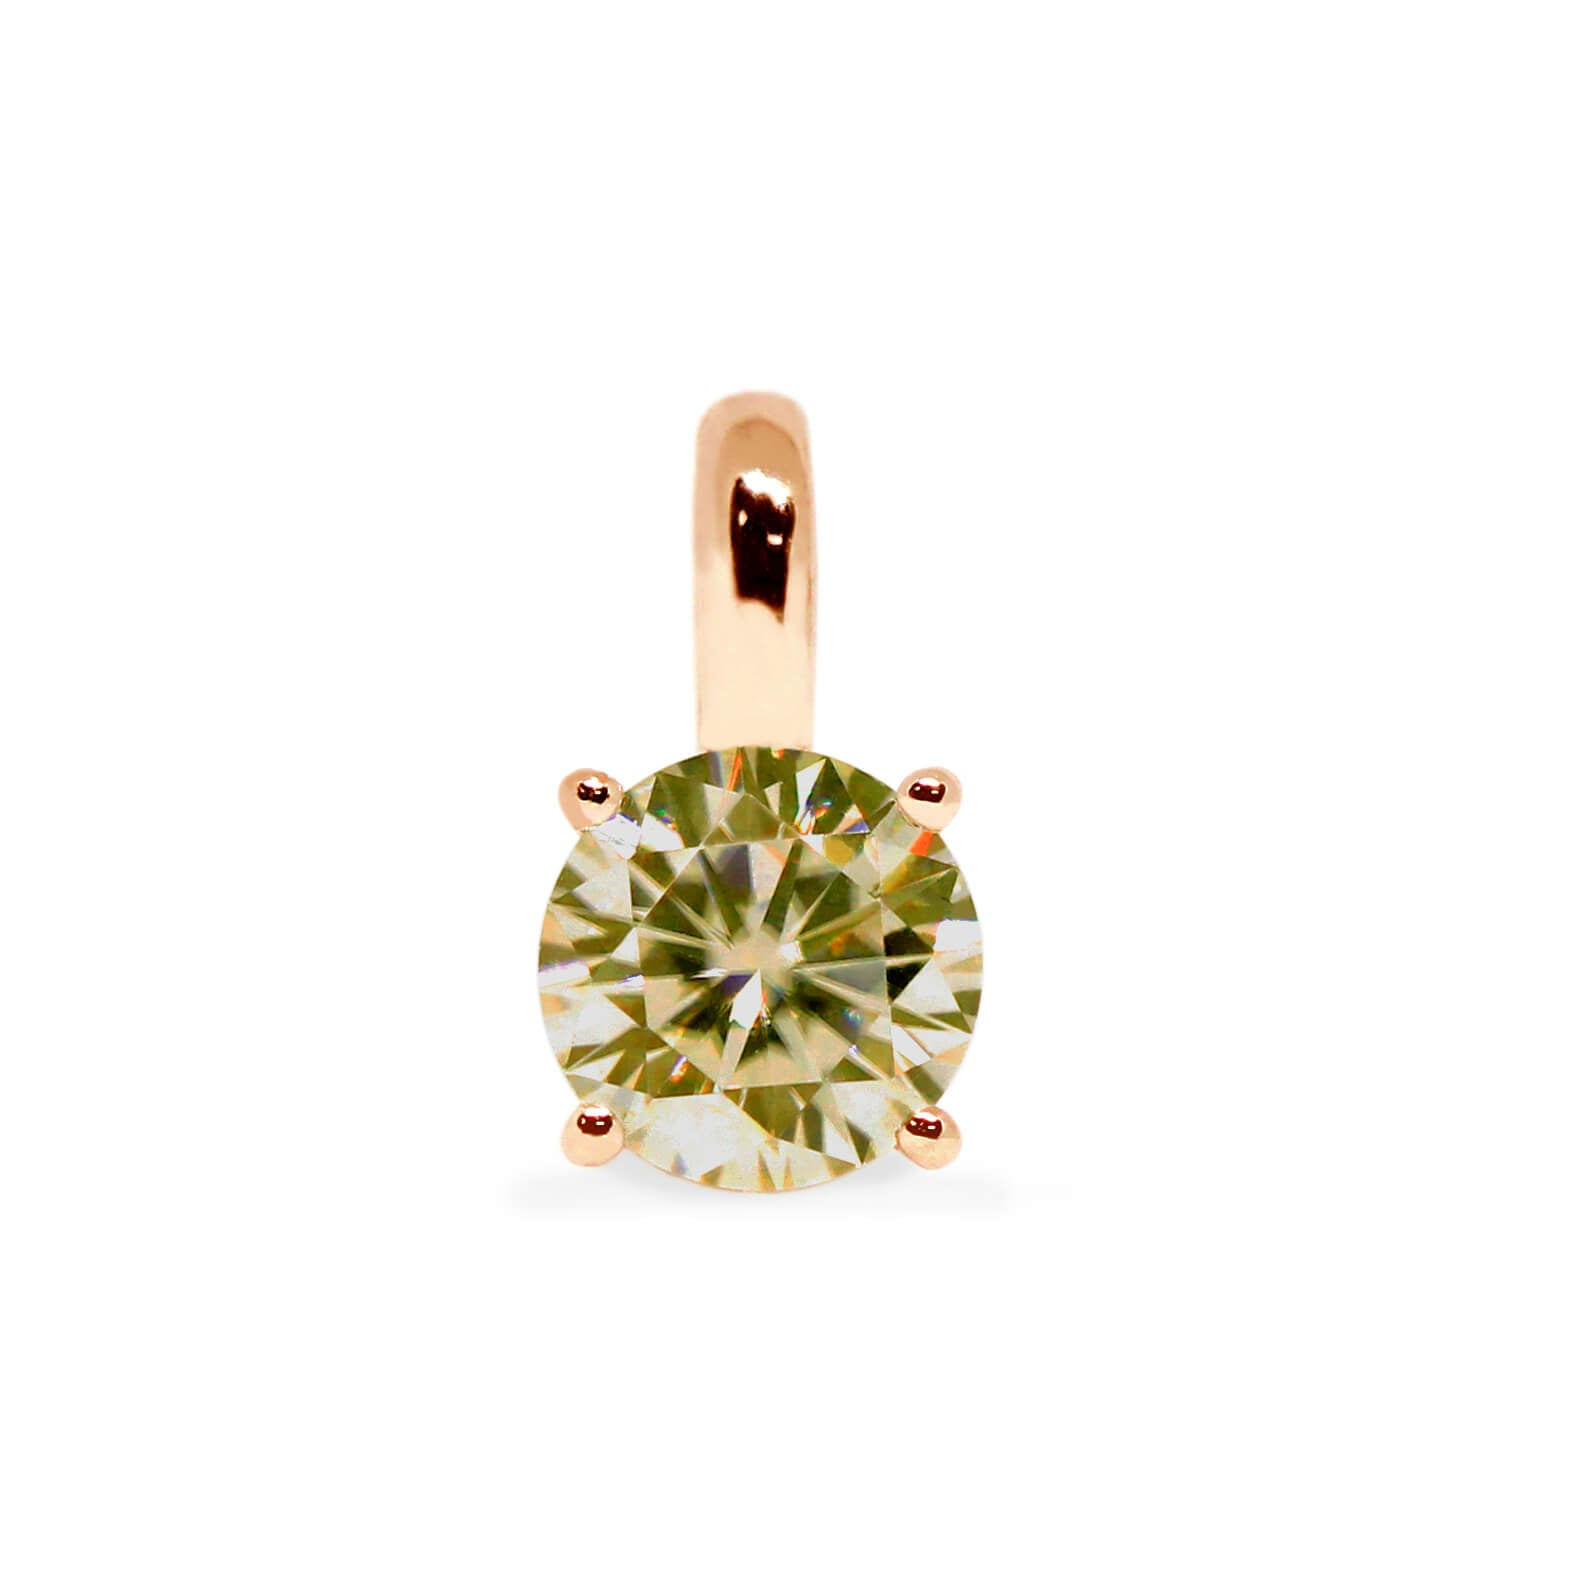 Fancy Intense Yellow Moissanite Round Solitaire 18K Gold Pendant